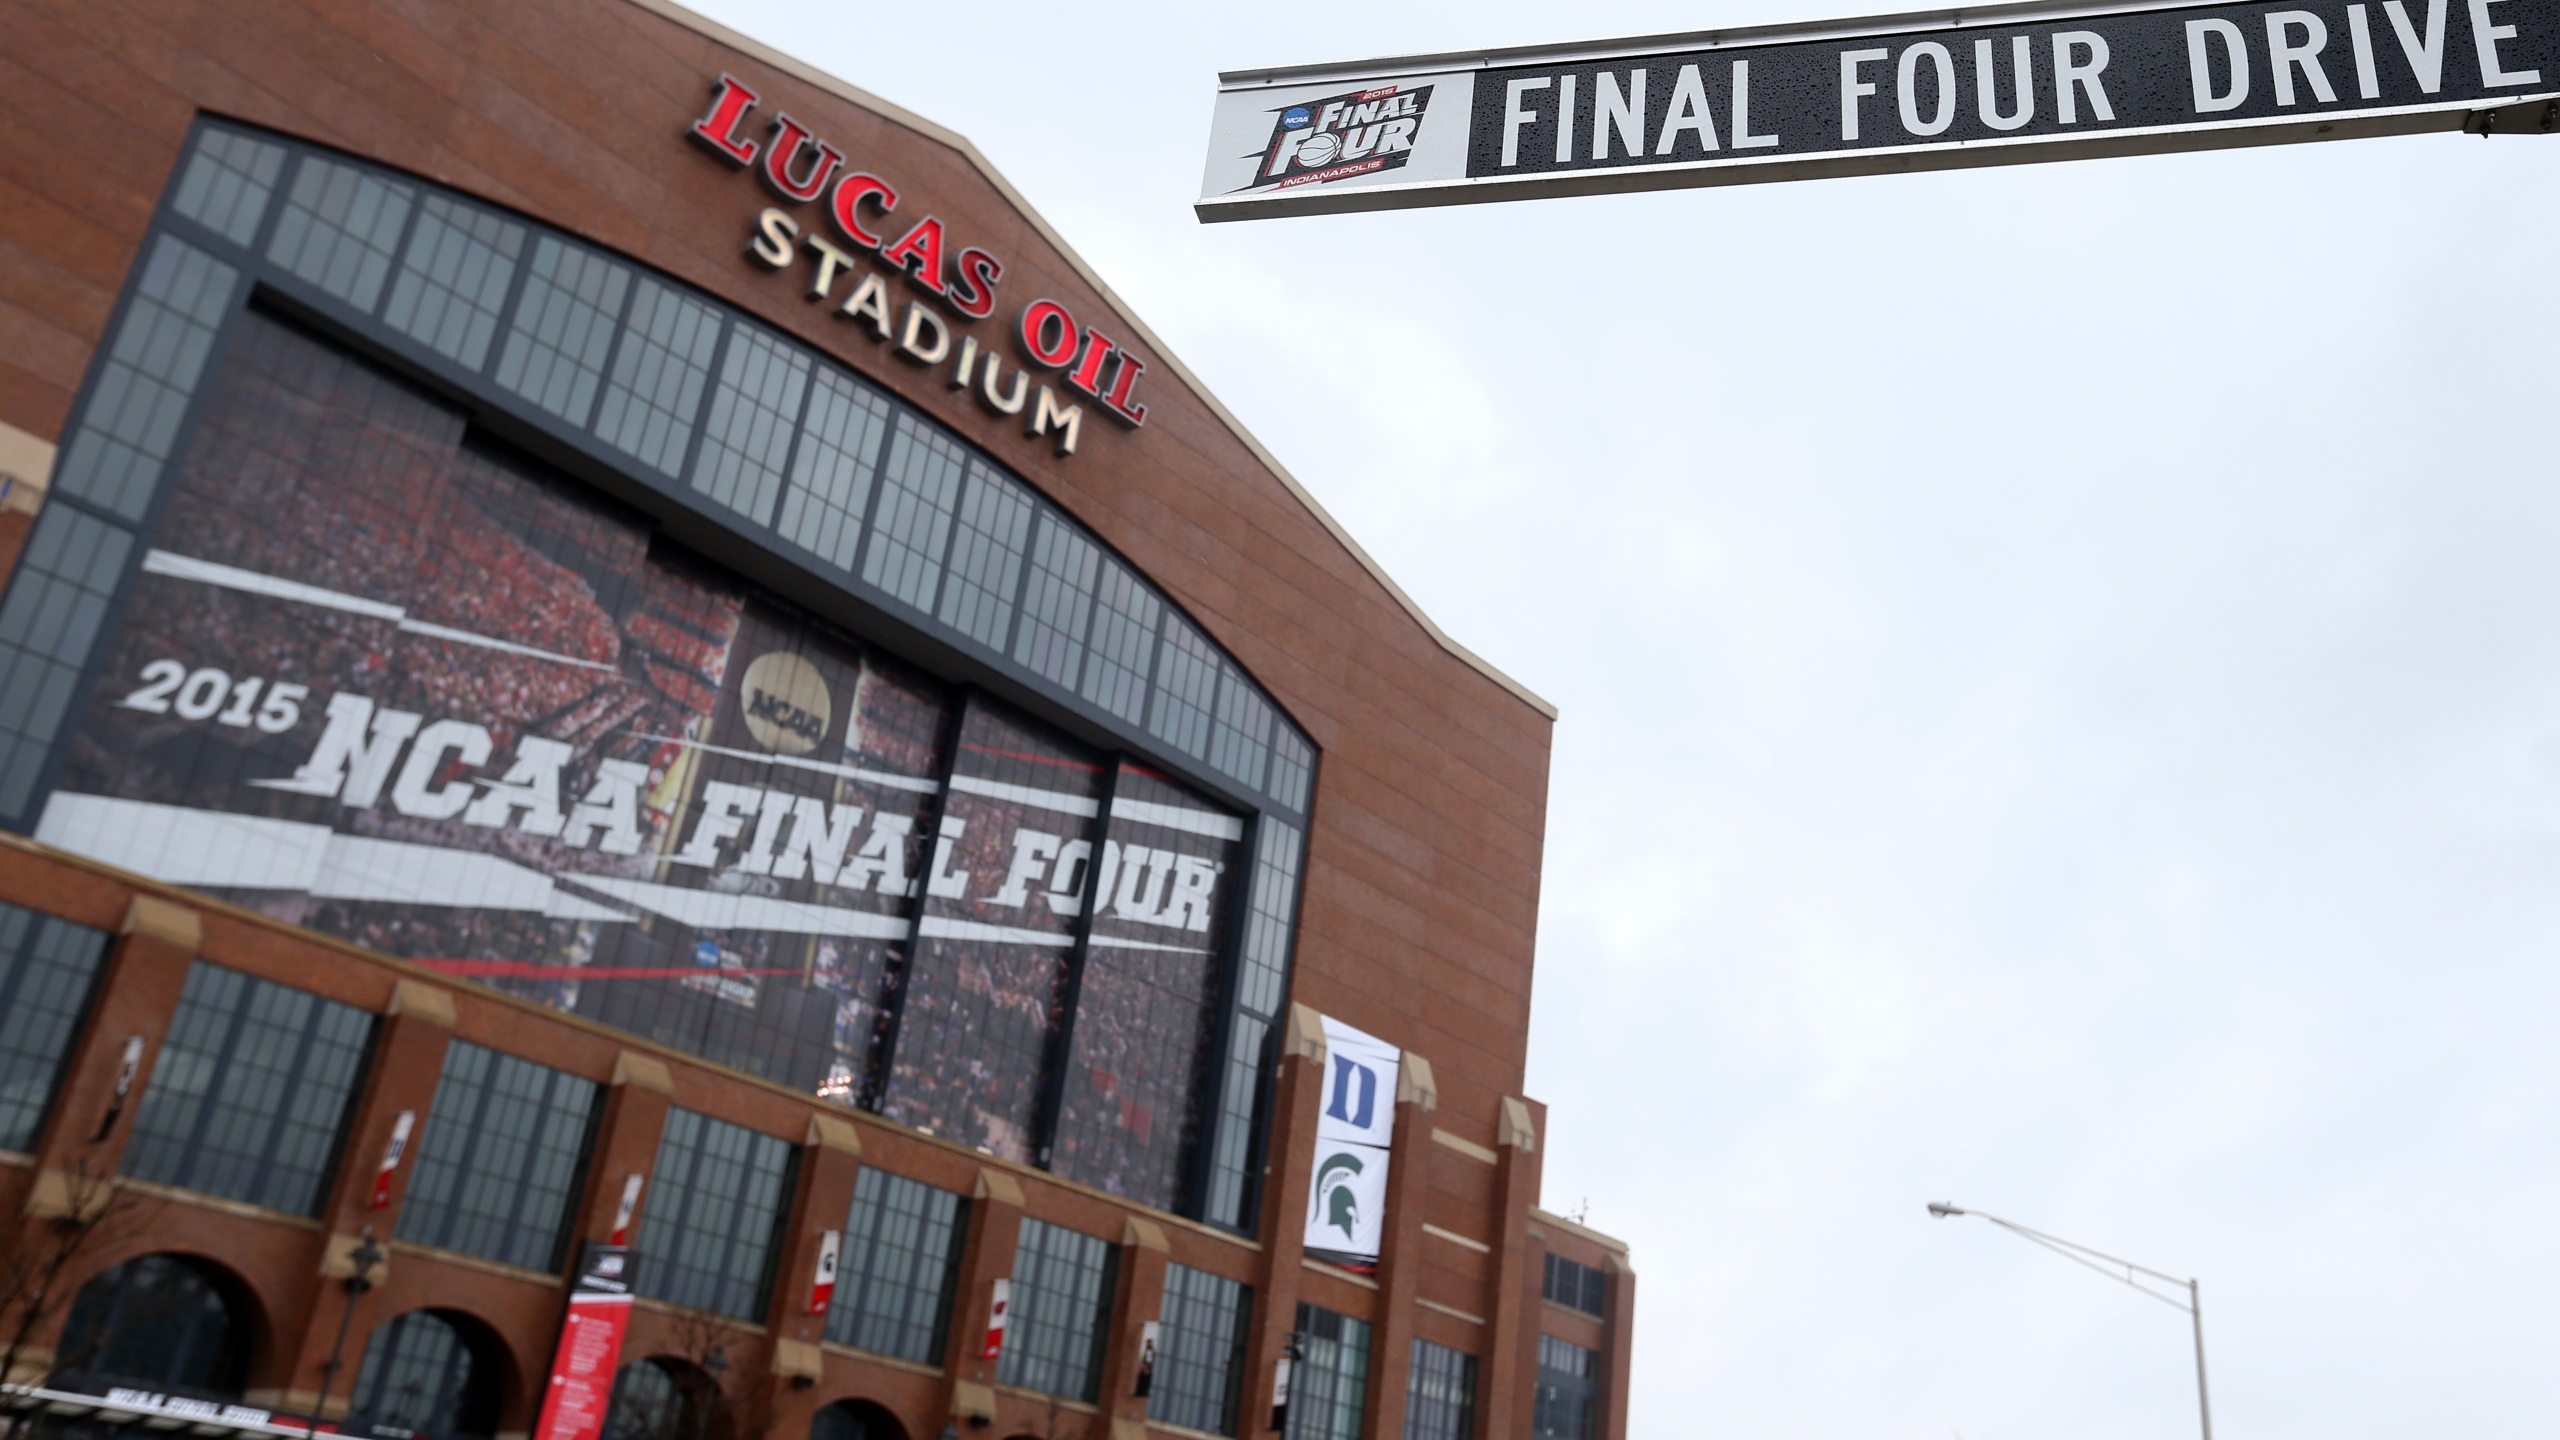 A file photo shows the Final Four Drive street sign outside Lucas Oil Stadium ahead of the 2015 NCAA Men's Final Four on April 2, 2015 in Indianapolis, Indiana. (Streeter Lecka/Getty Images)